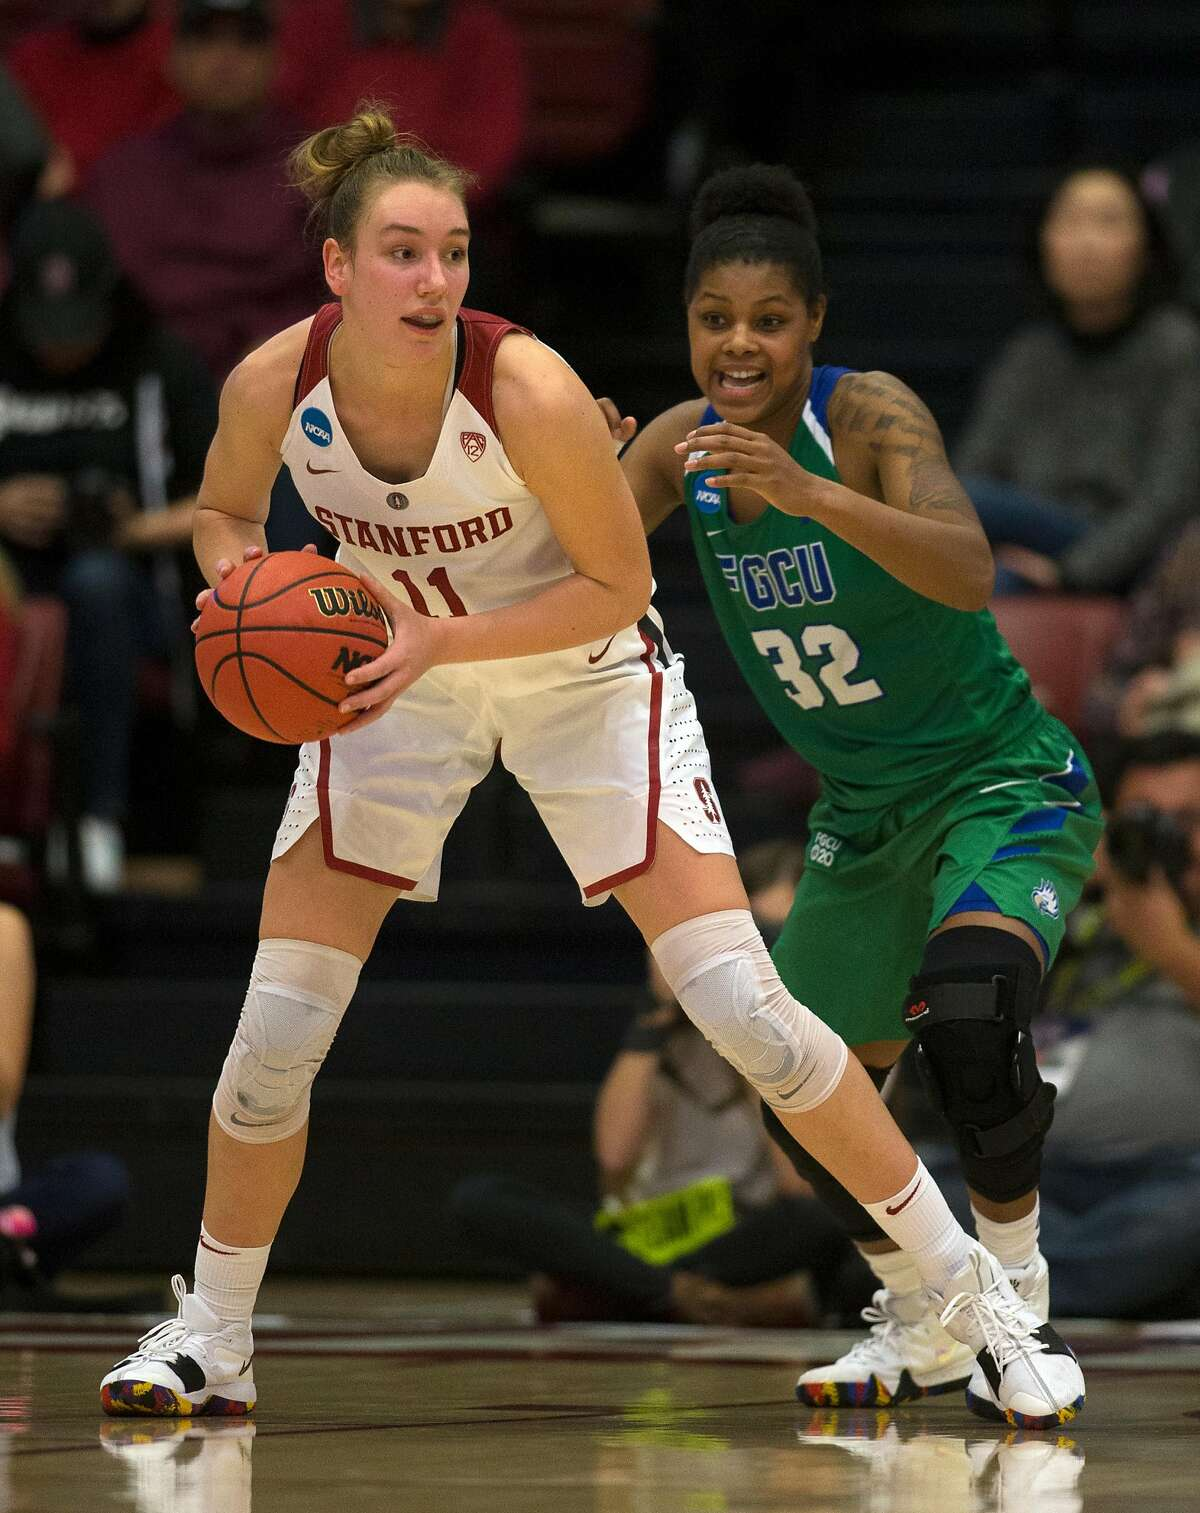 Stanford forward Alanna Smith (11) looks for an open teammate in front of Florida Gulf Coast forward Rosemarie Julien (32) during the third quarter of an NCAA Division I Women's Basketball Championship game, on Monday, March 19, 2018 in Stanford, Calif. Smith led all scorers with 28 points, and Stanford won 90-70, to advance to the Sweet 16.